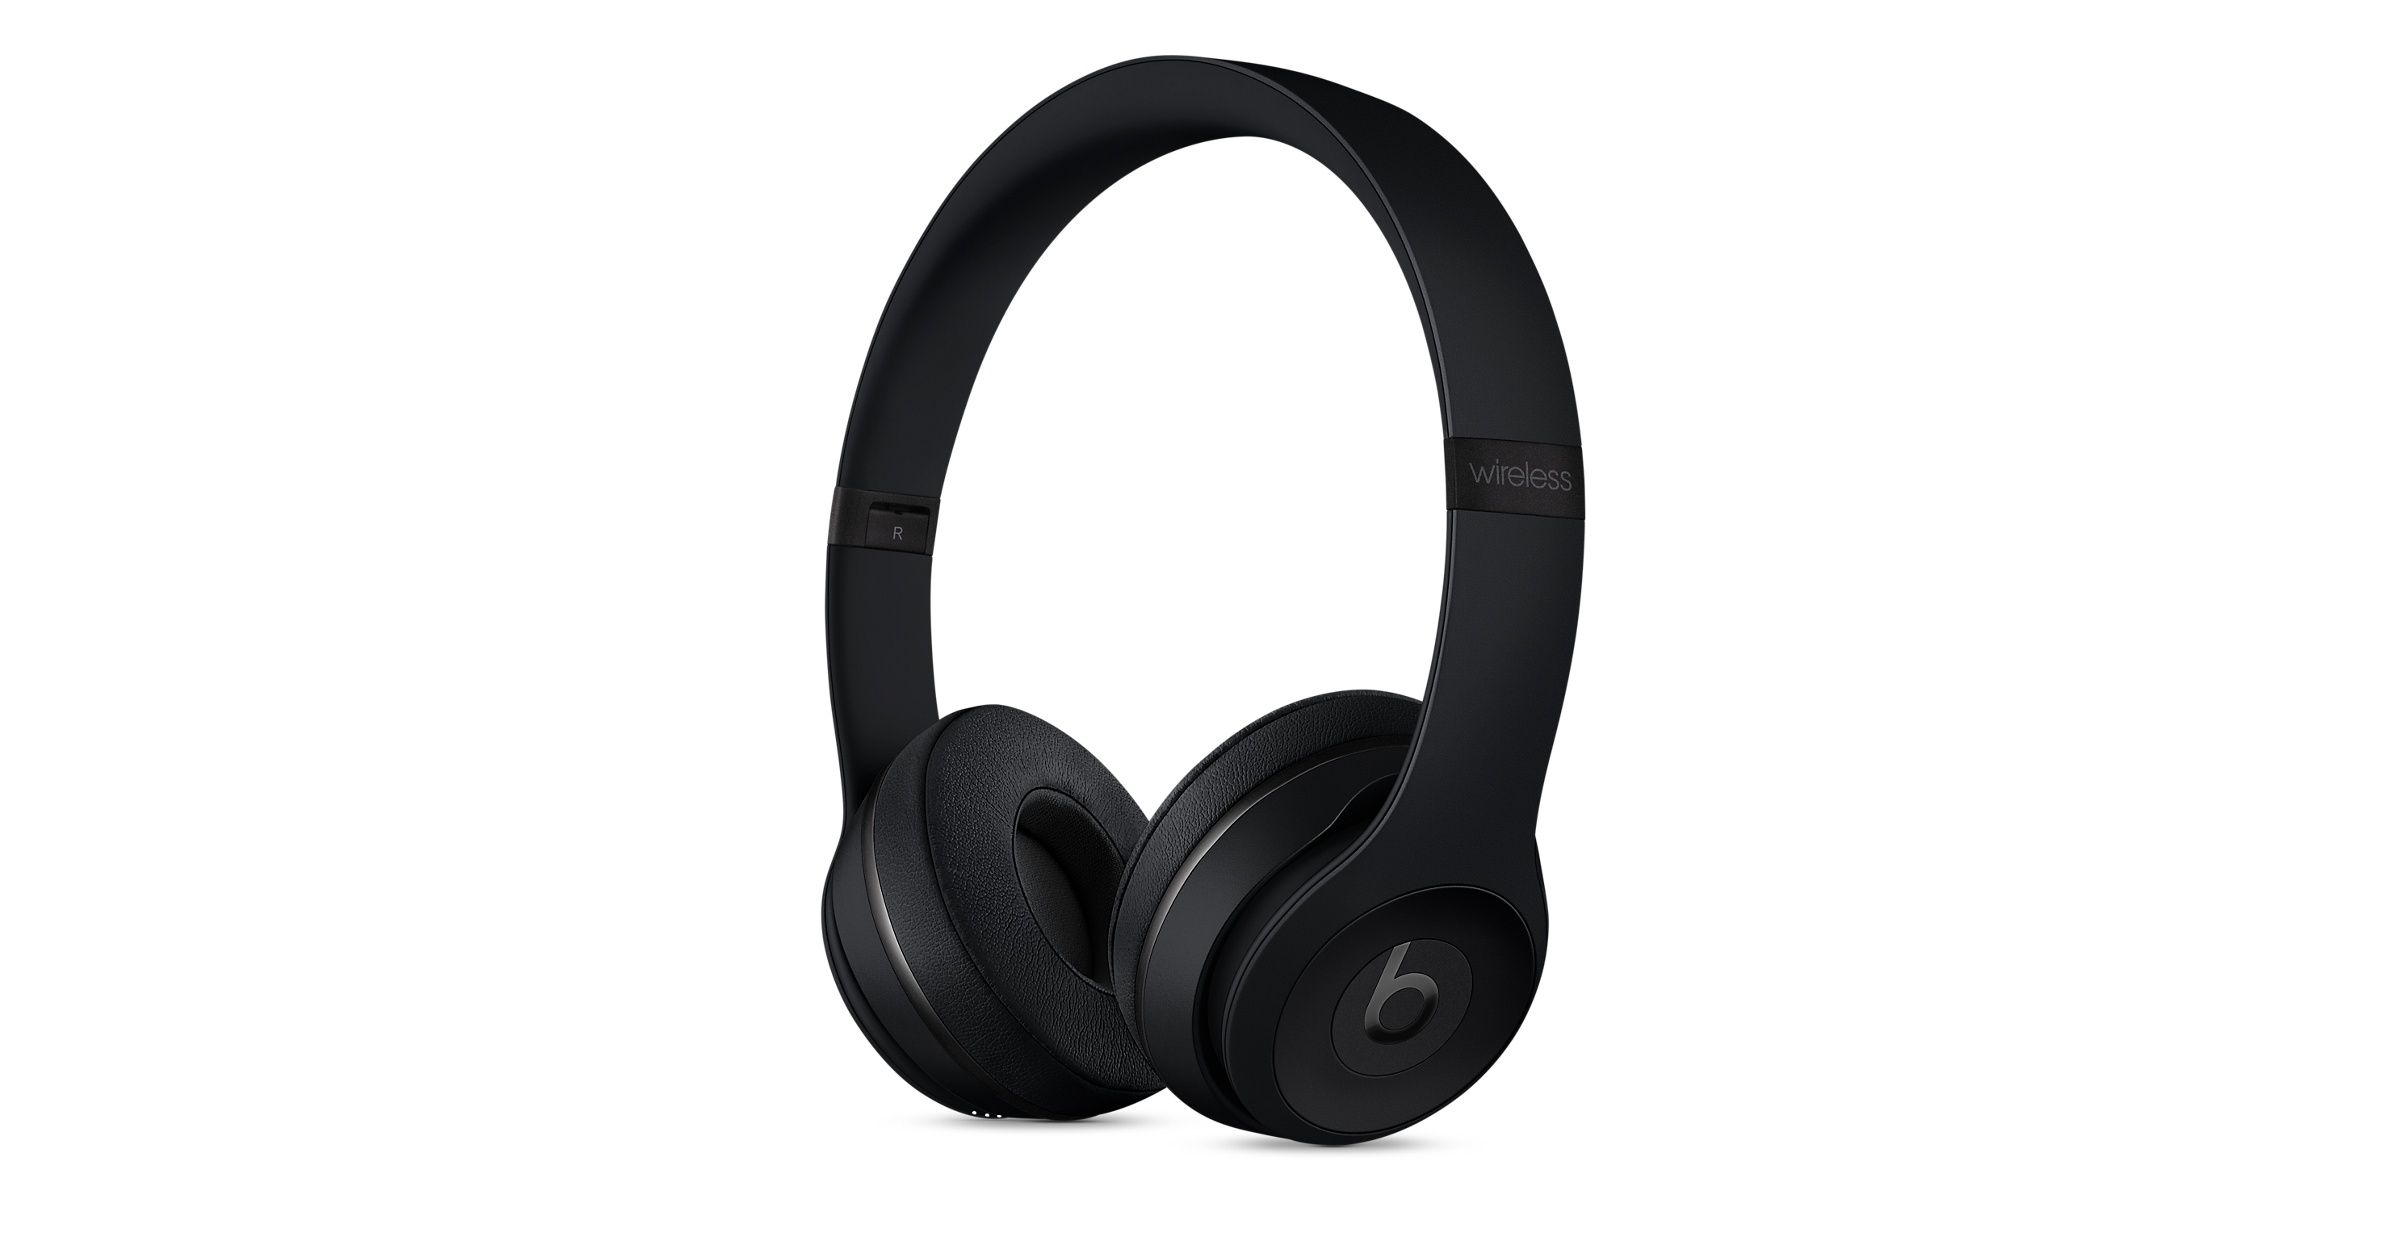 Beats by Dr. Dre Solo3 Wireless Headphones in black let you listen to your  favourite music without any cables. Buy now at apple.com 4a7da0fde418